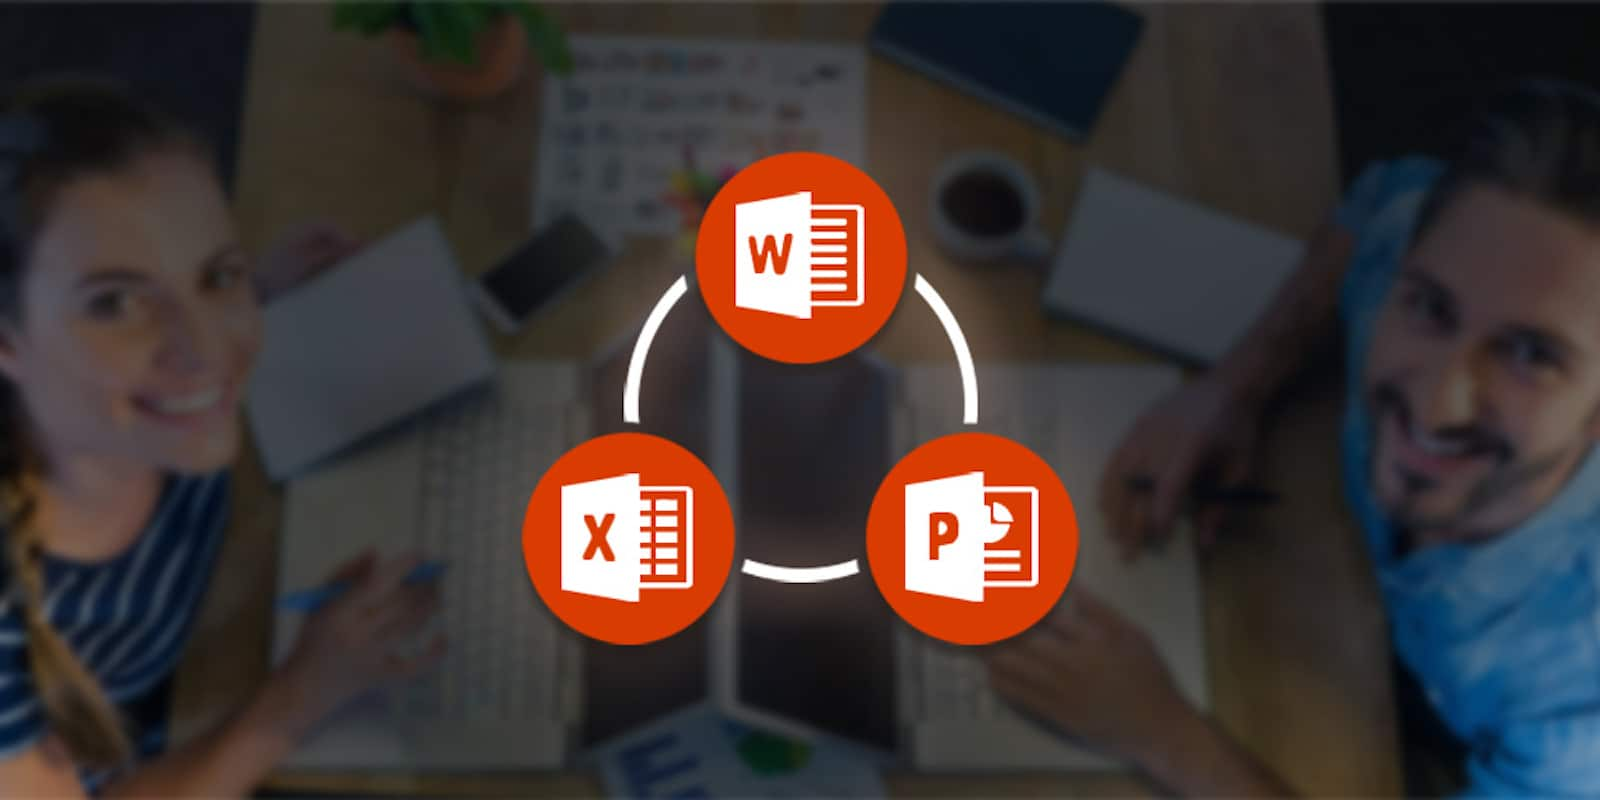 Up your skills in Microsoft Office, one of the most widely-used productivity platforms.